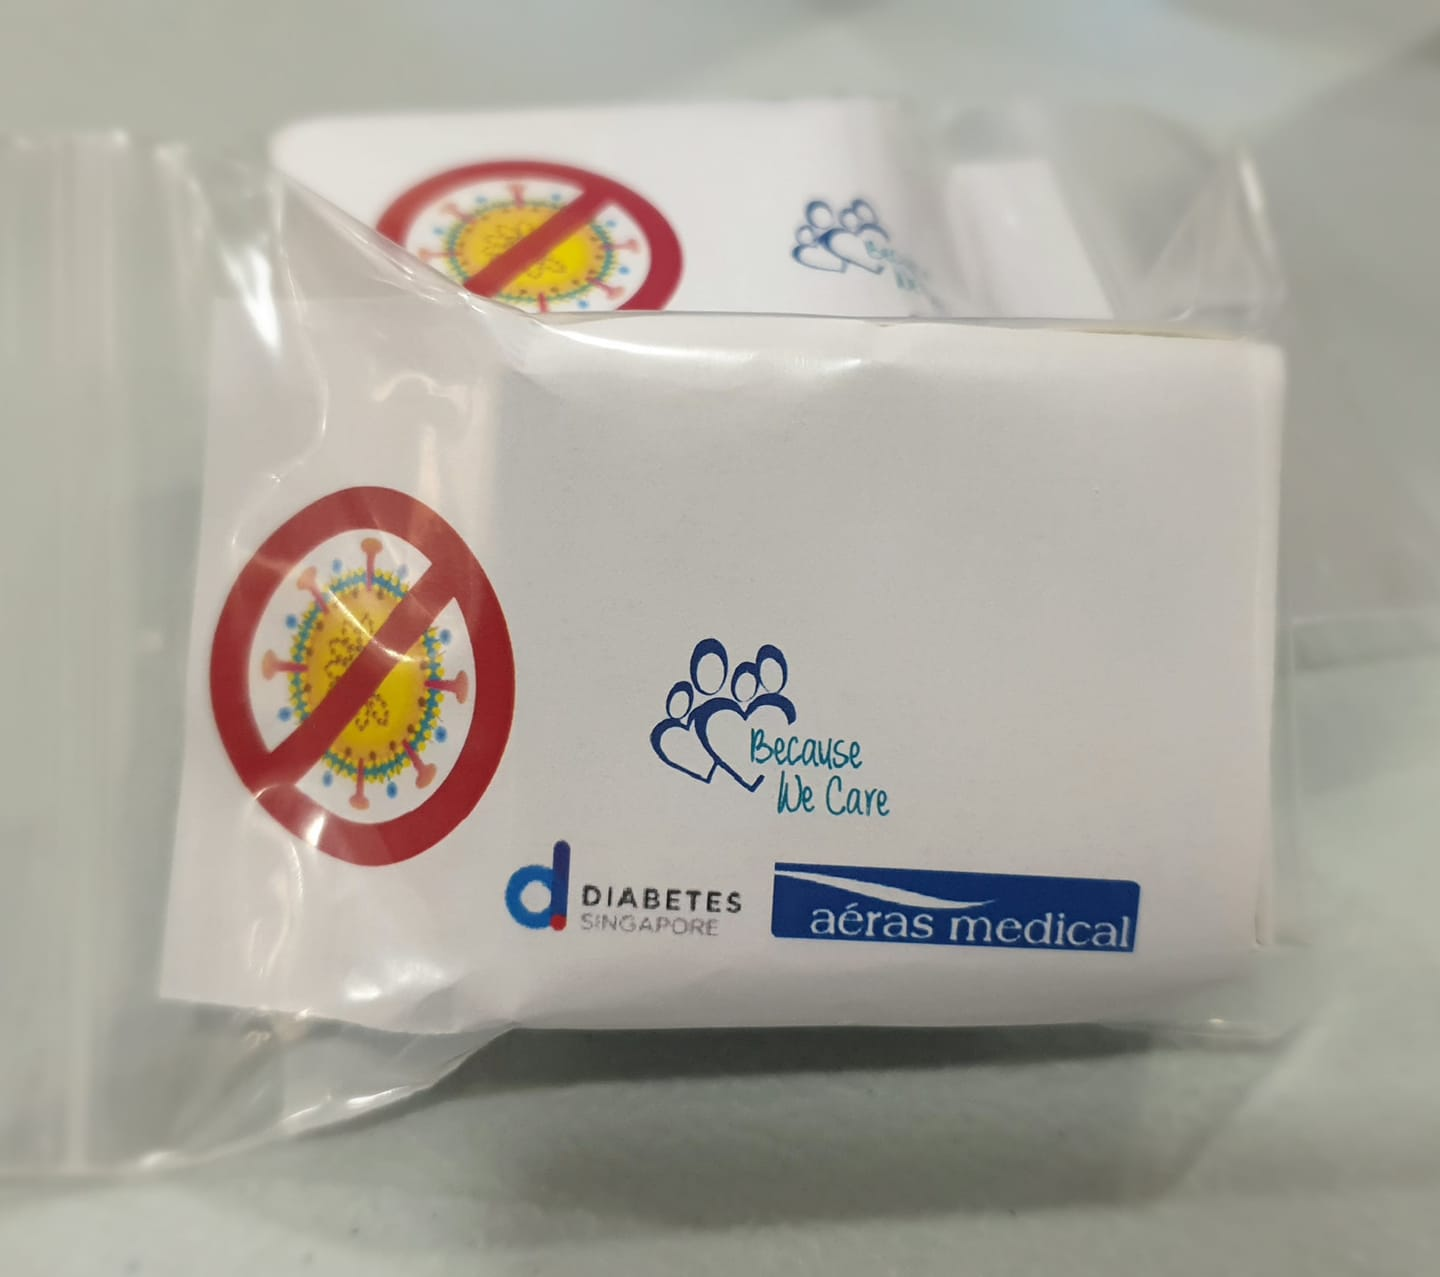 Diabetes Singapore Giving Free Alcohol Swabs Because People Have Hoarded Alcohol Swabs from Pharmacies